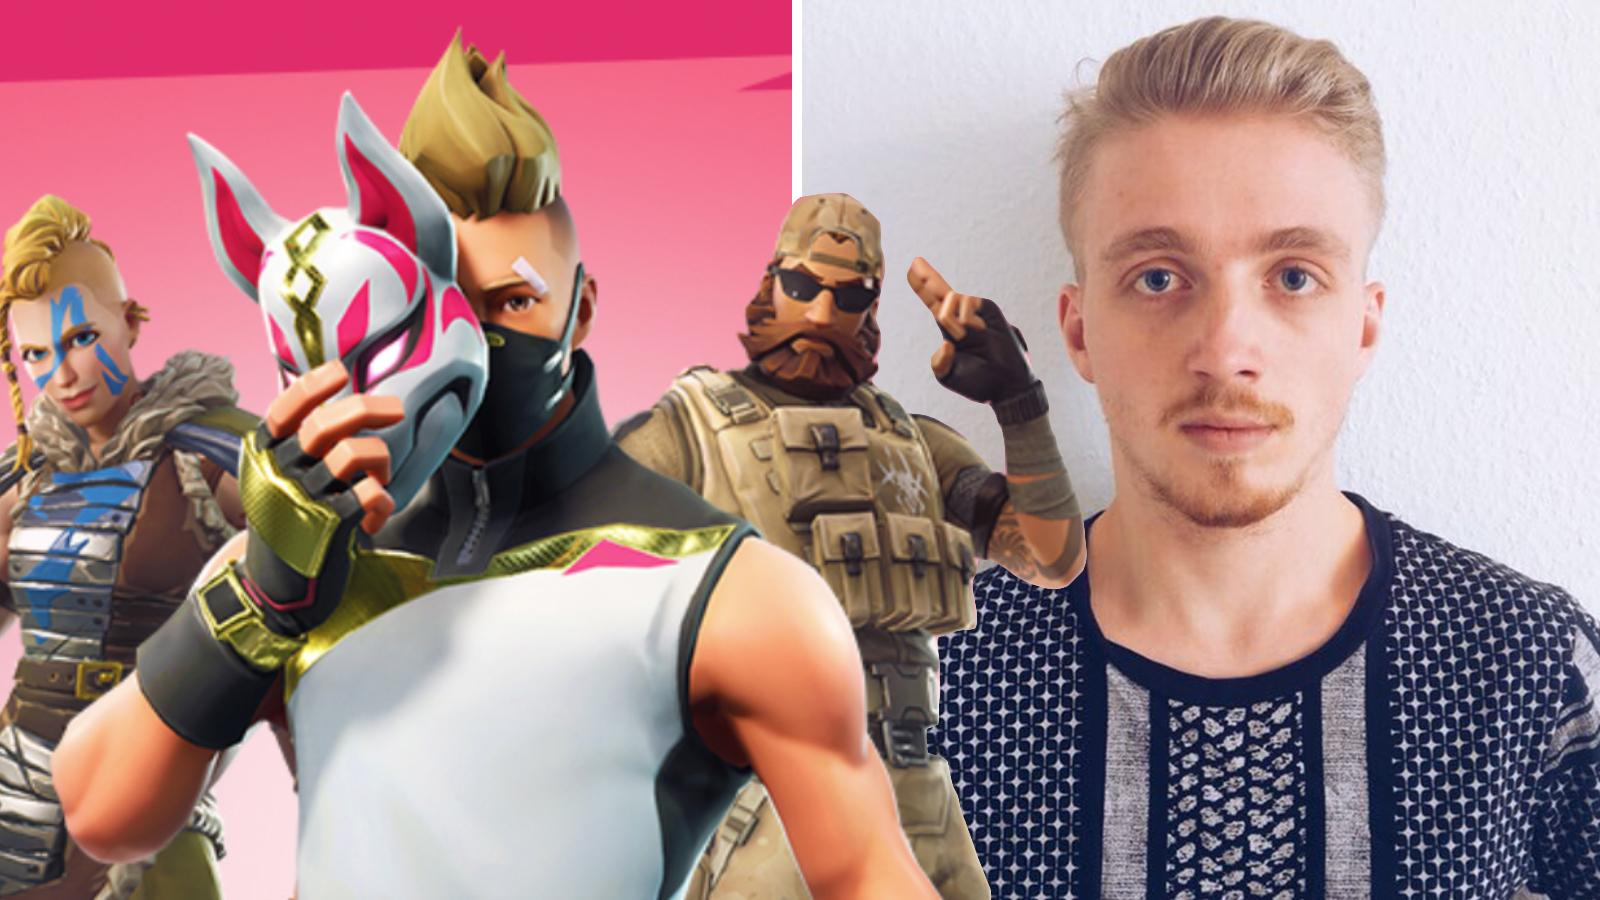 fortnite_christoffer_topbillede.jpg